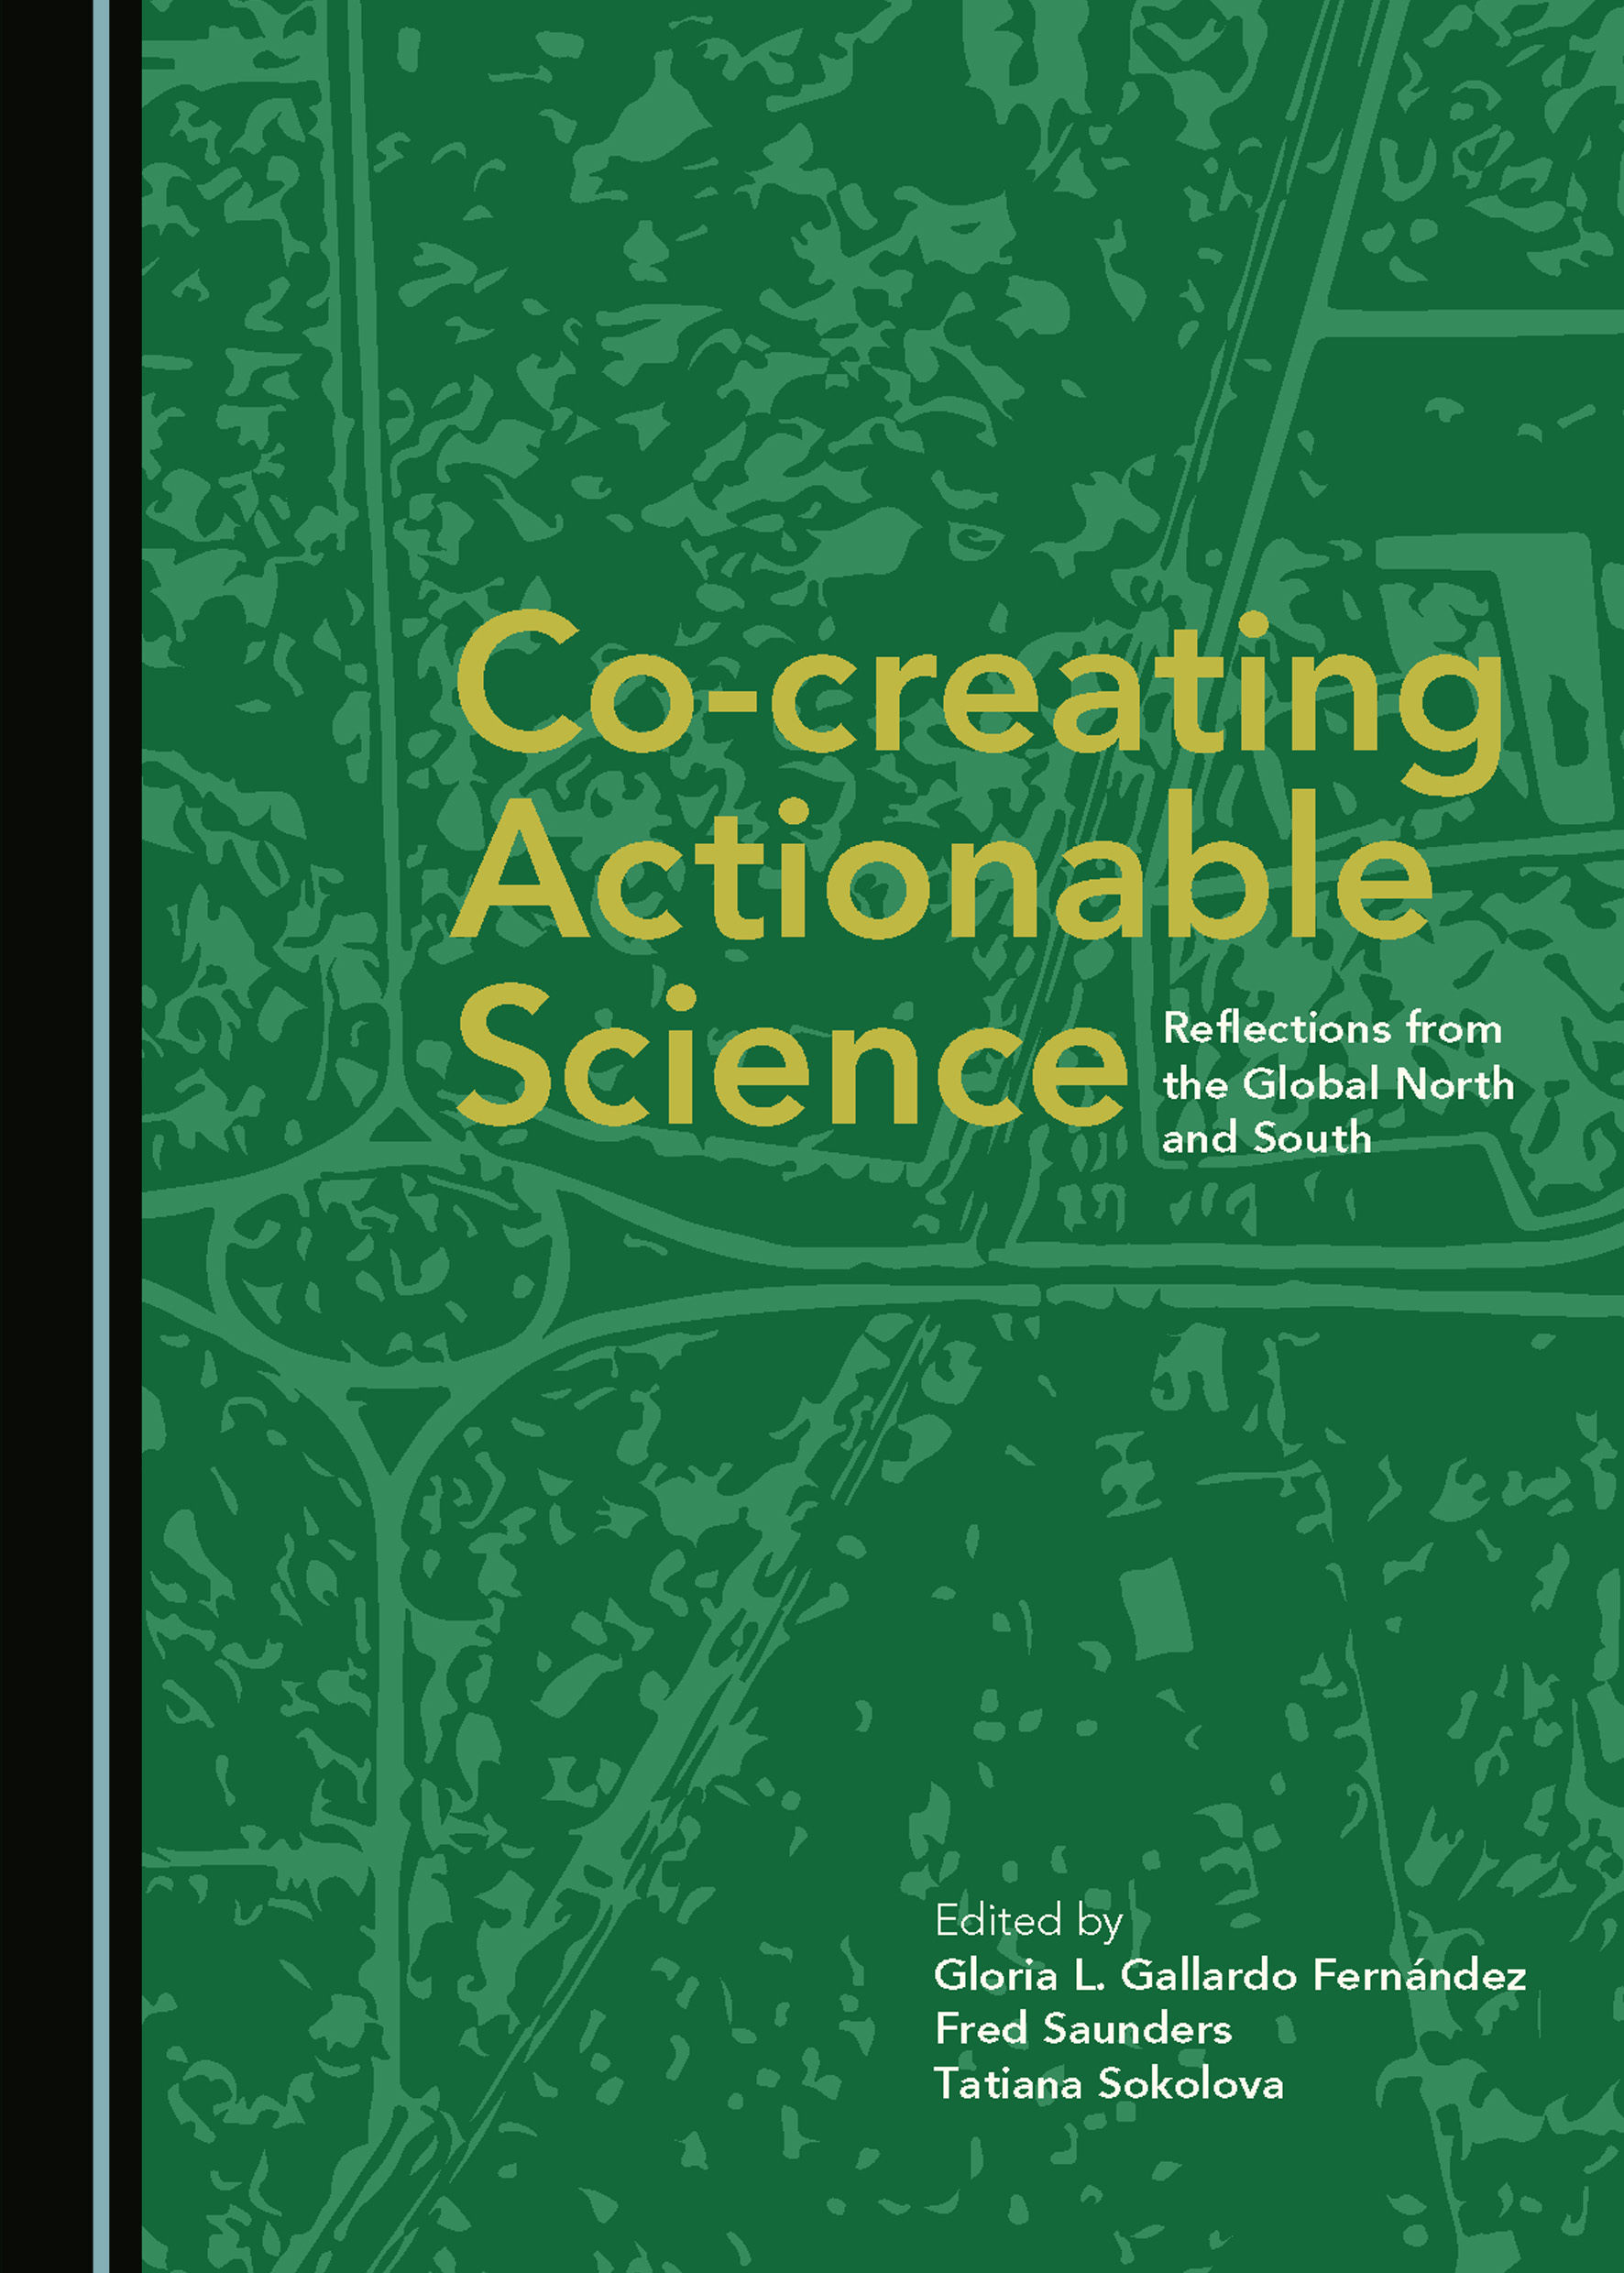 Co-creating Actionable Science: Reflections from the Global North and South